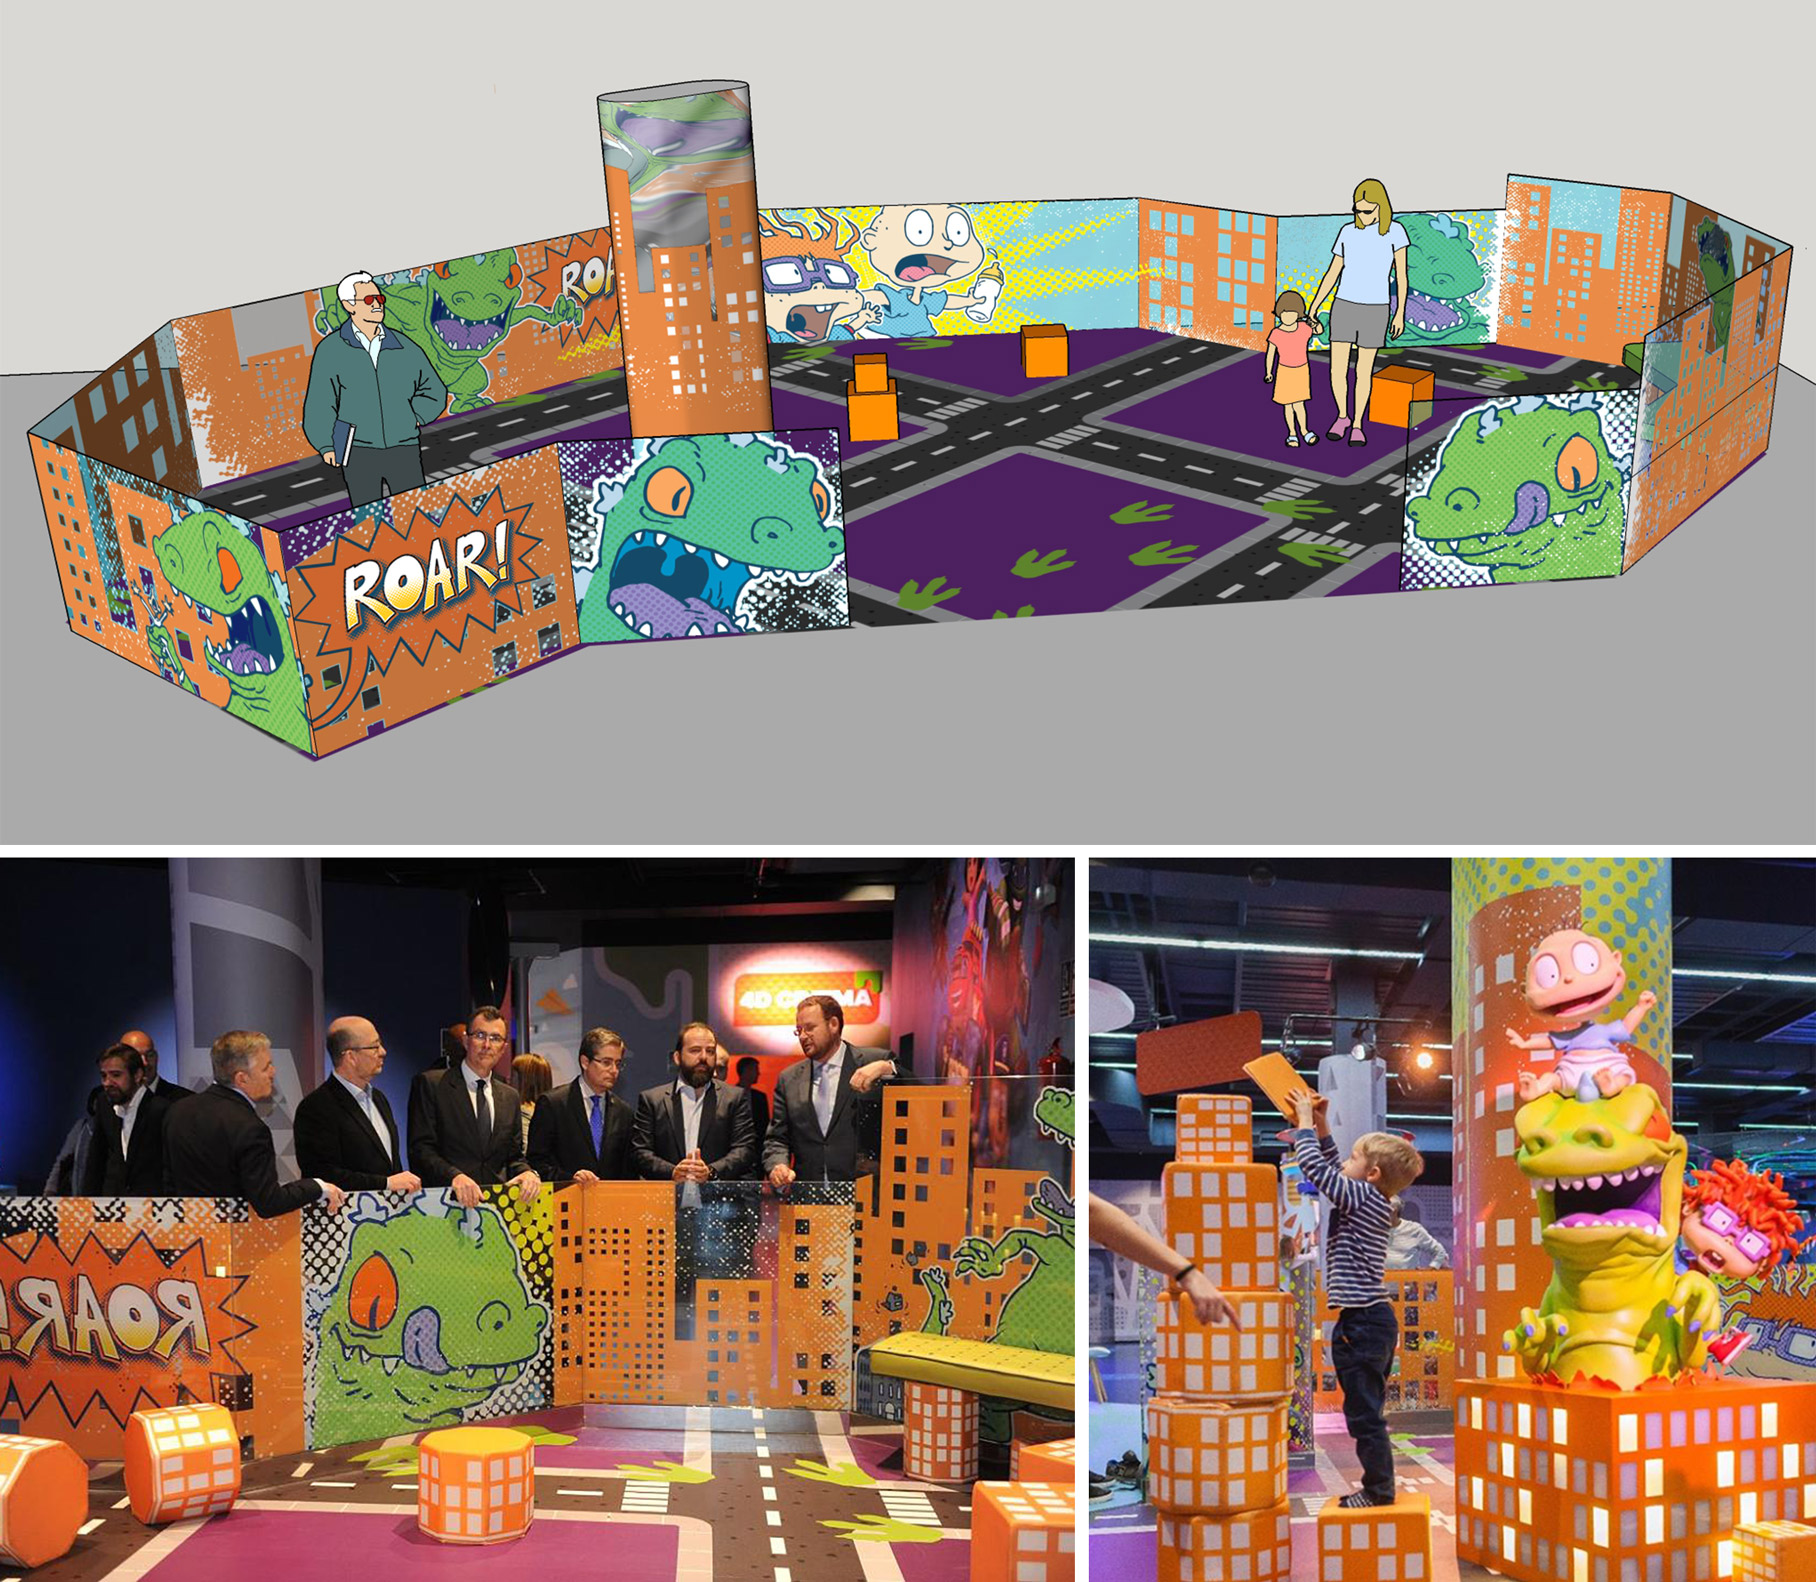 Rugrat's Reptar Play area